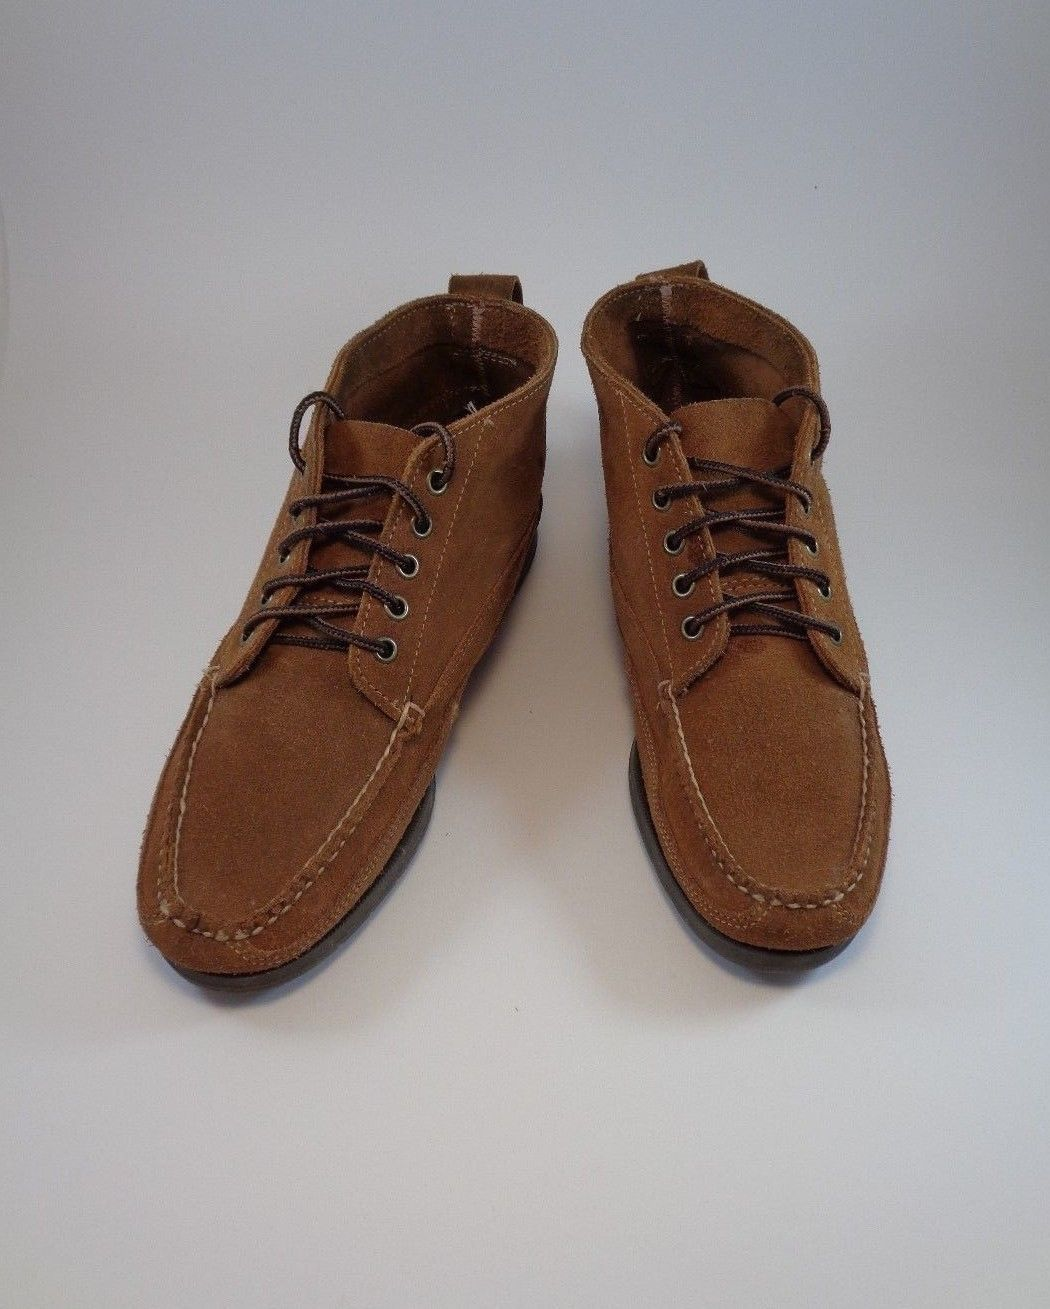 39a5042fb GH BASS Brown Suede Leather Chukkas Casual and 29 similar items